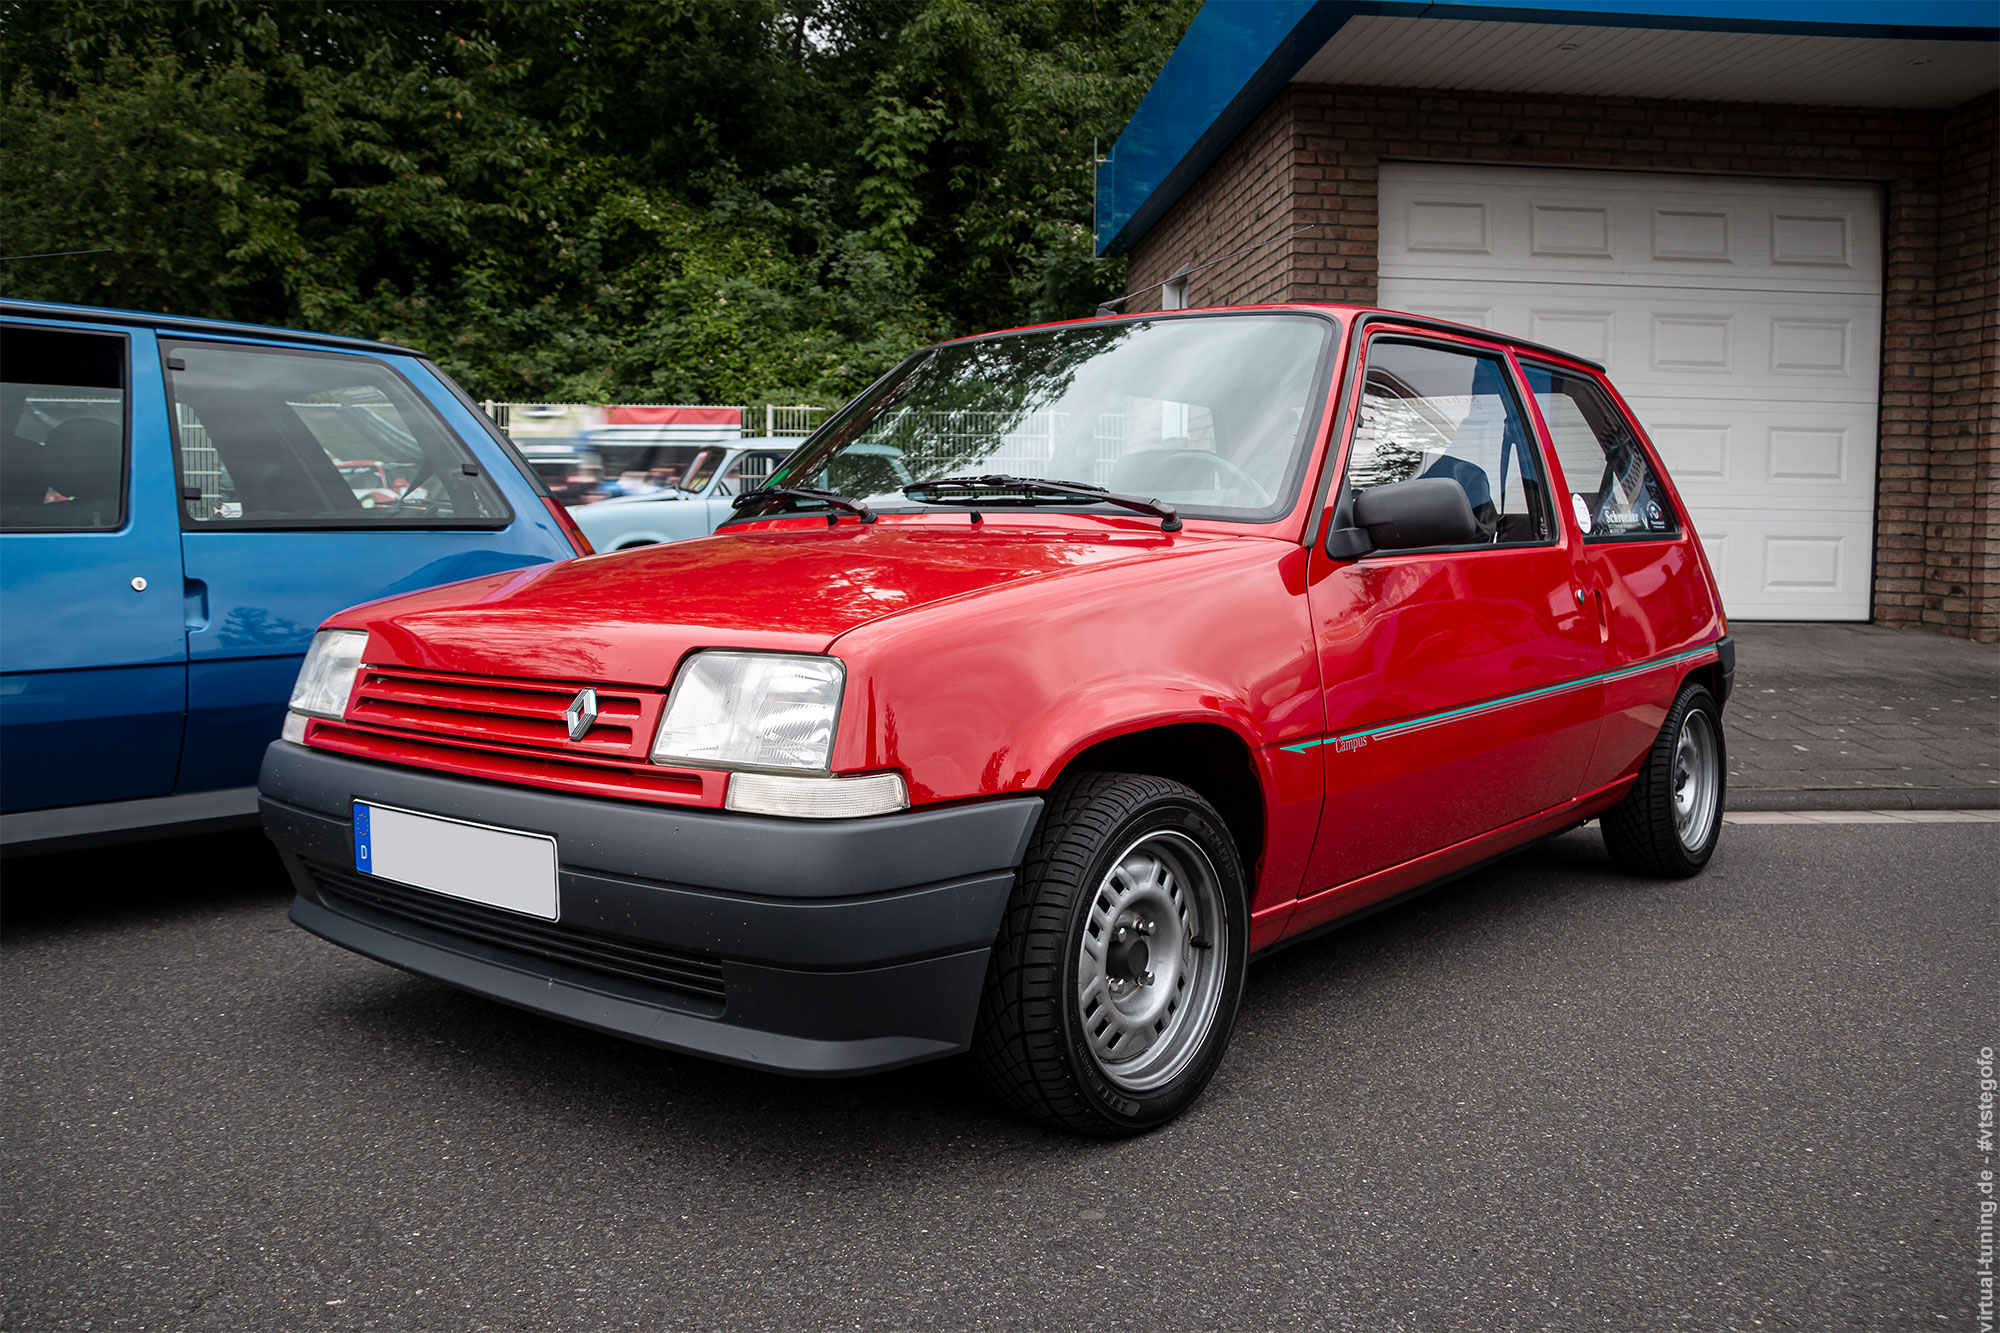 Renault 5 Campus - R.S. meets Cafe 477